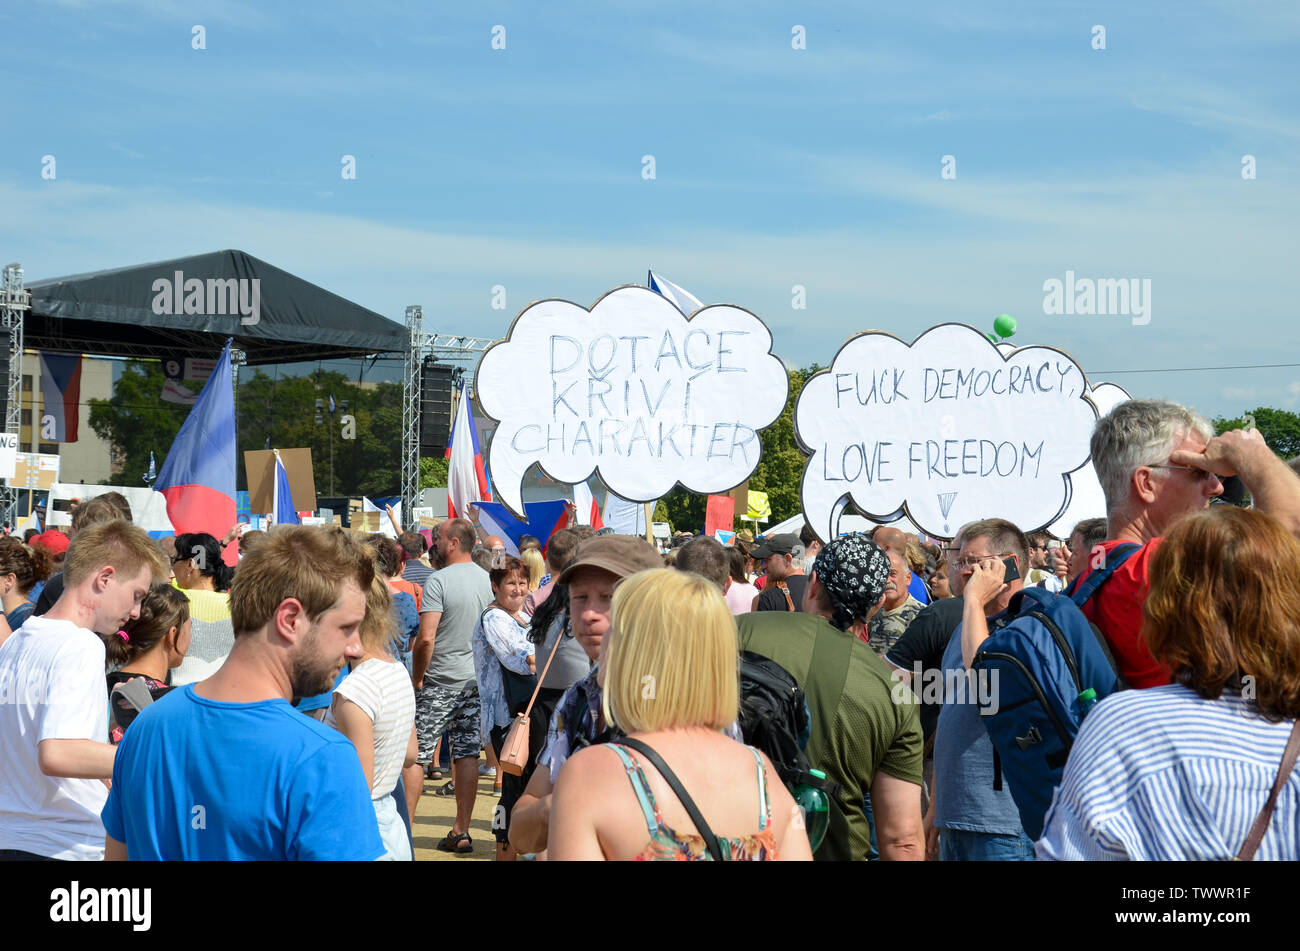 Prague, Czech Republic - June 23 2019: Crowd of people protests against Prime Minister Babis and Minister of Justice on Letna, Letenska plan. Demonstration calling for resignation. Democracy, protest. - Stock Image